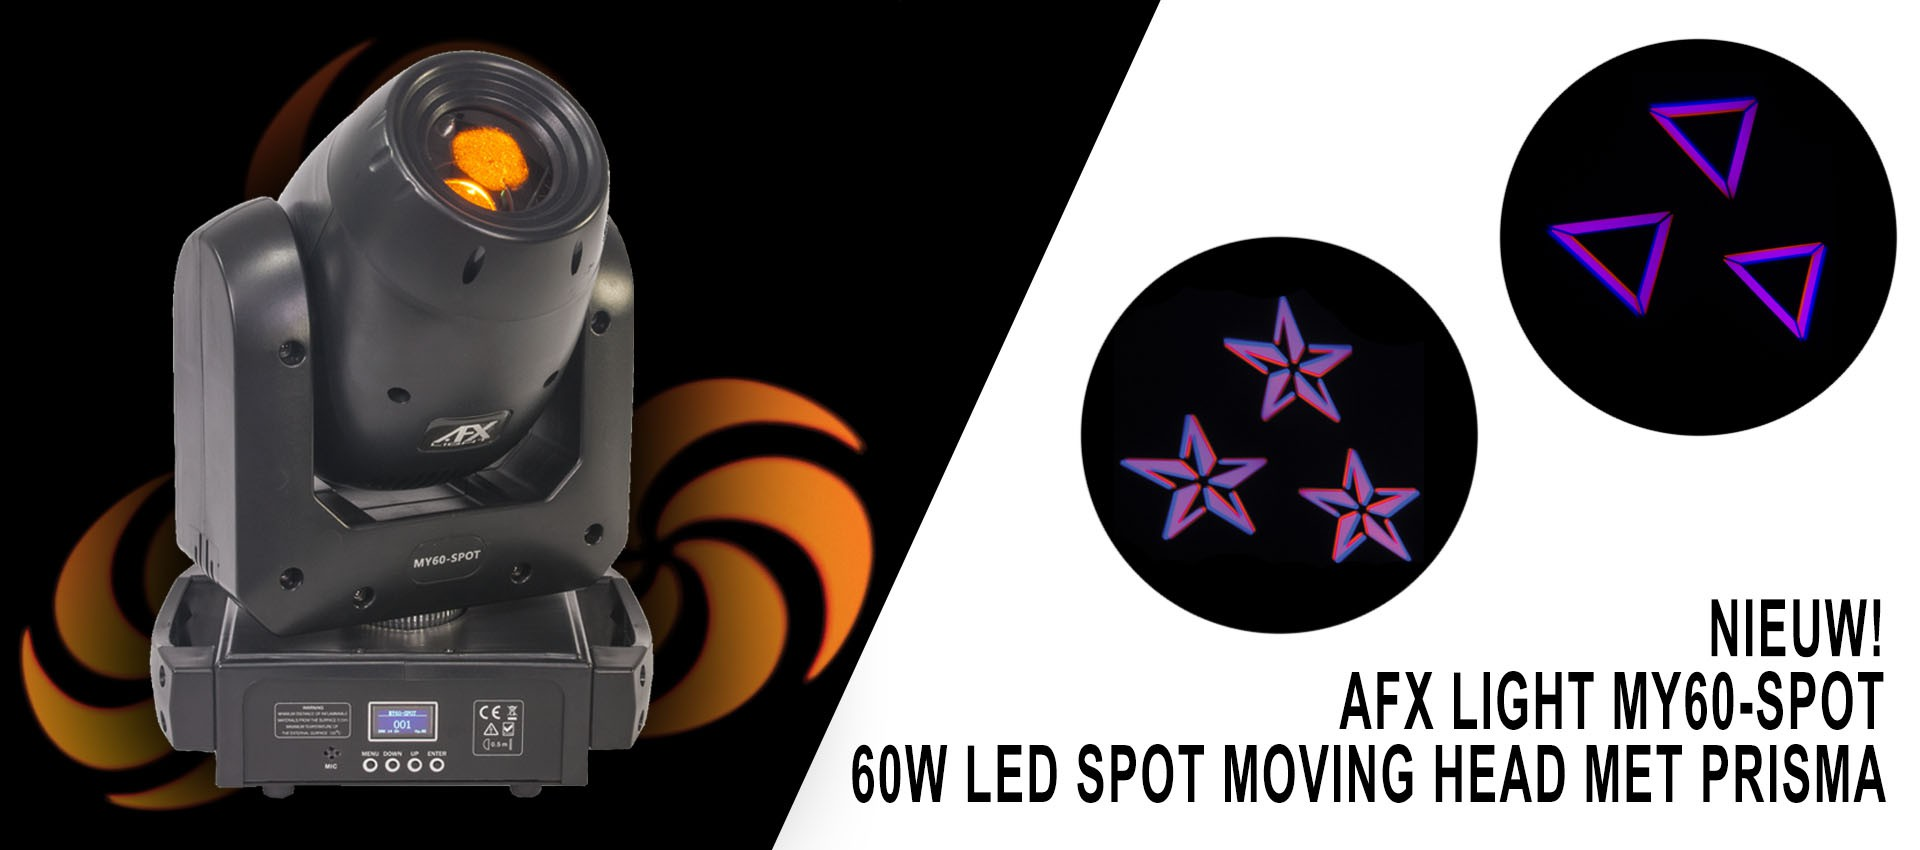 AFX Light MY60-SPOT - 60W led spot moving head met prisma